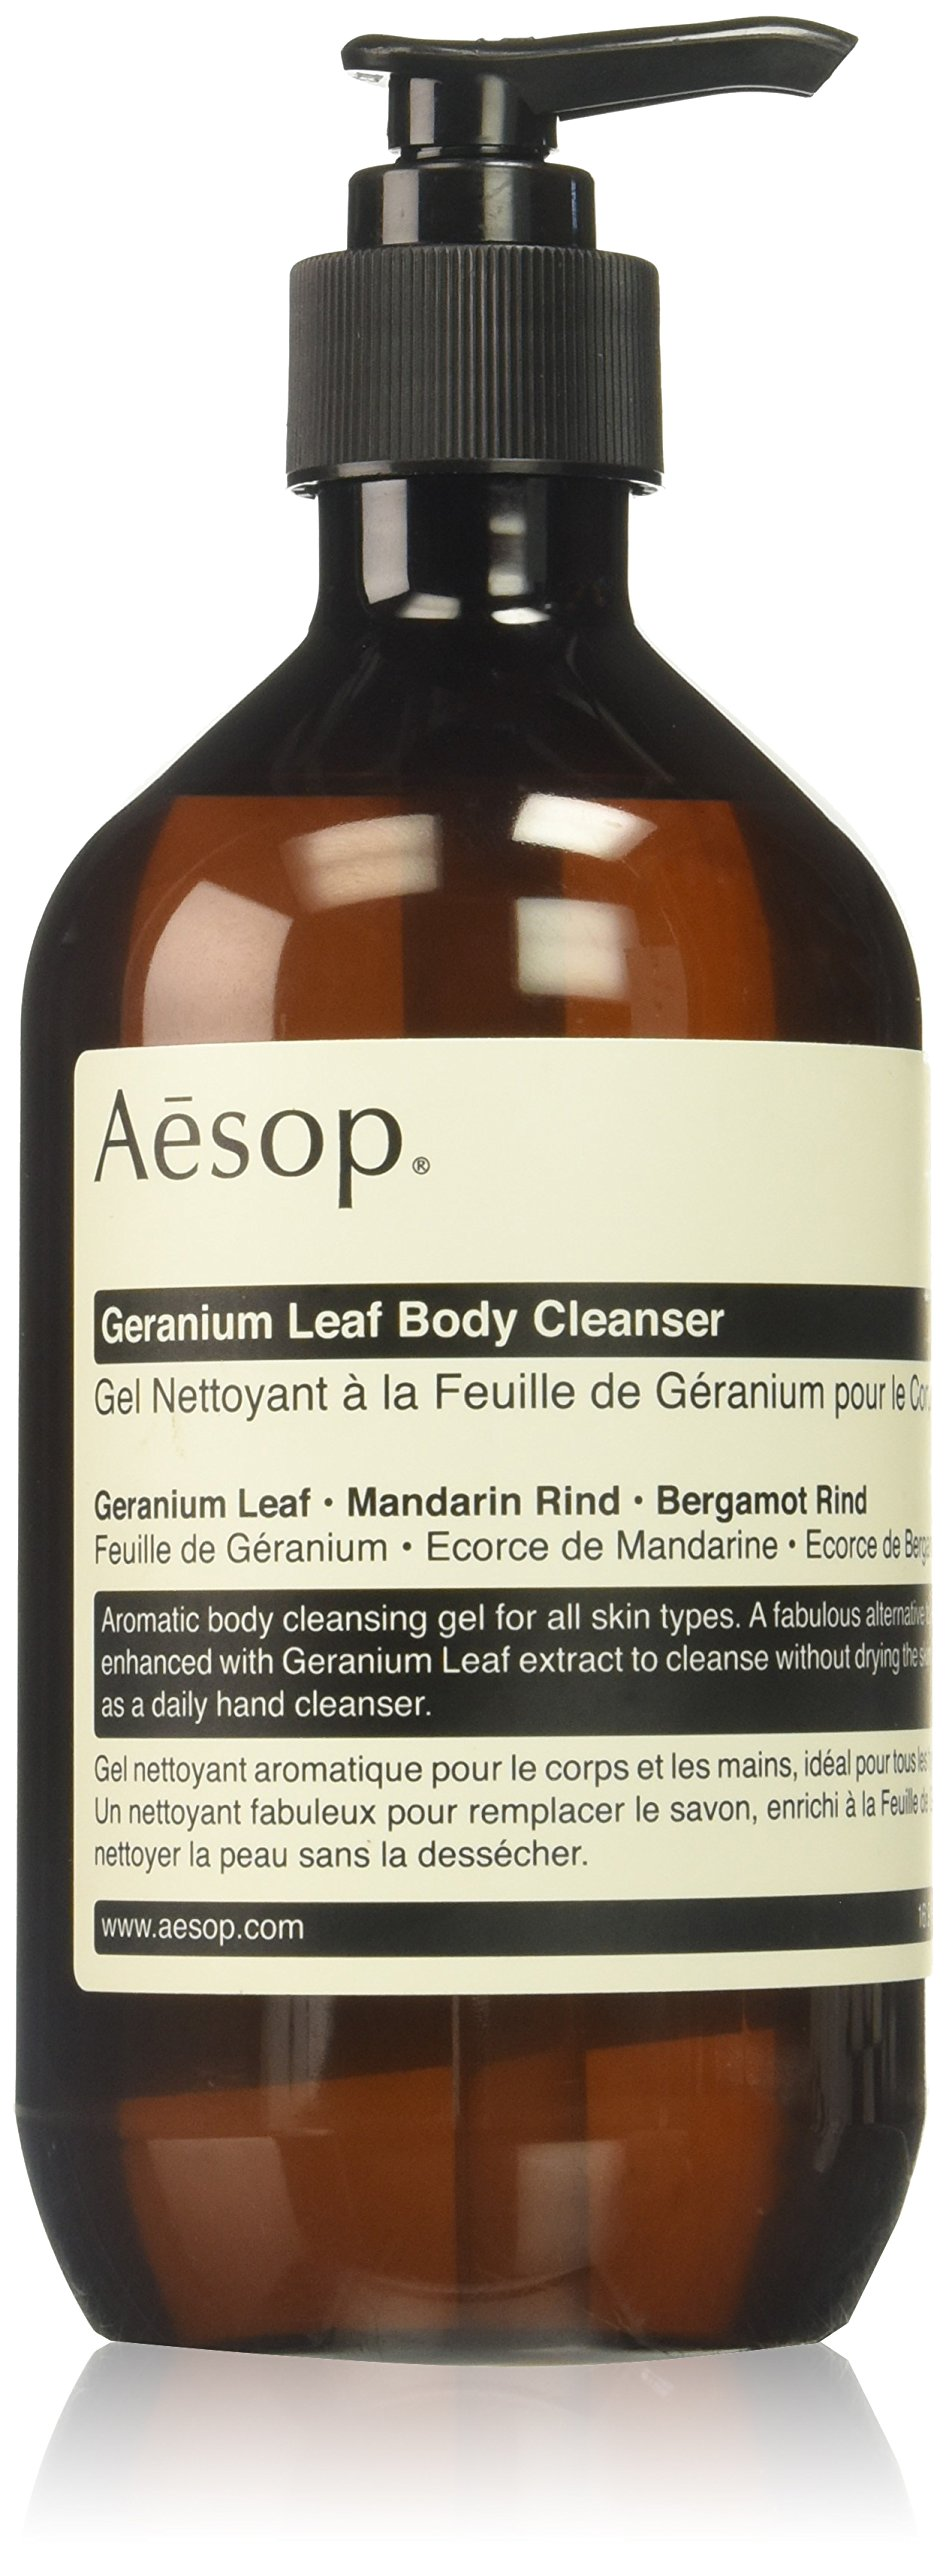 Aesop Geranium Leaf Body Cleanser, 16.9 Ounce by Aesop (Image #1)